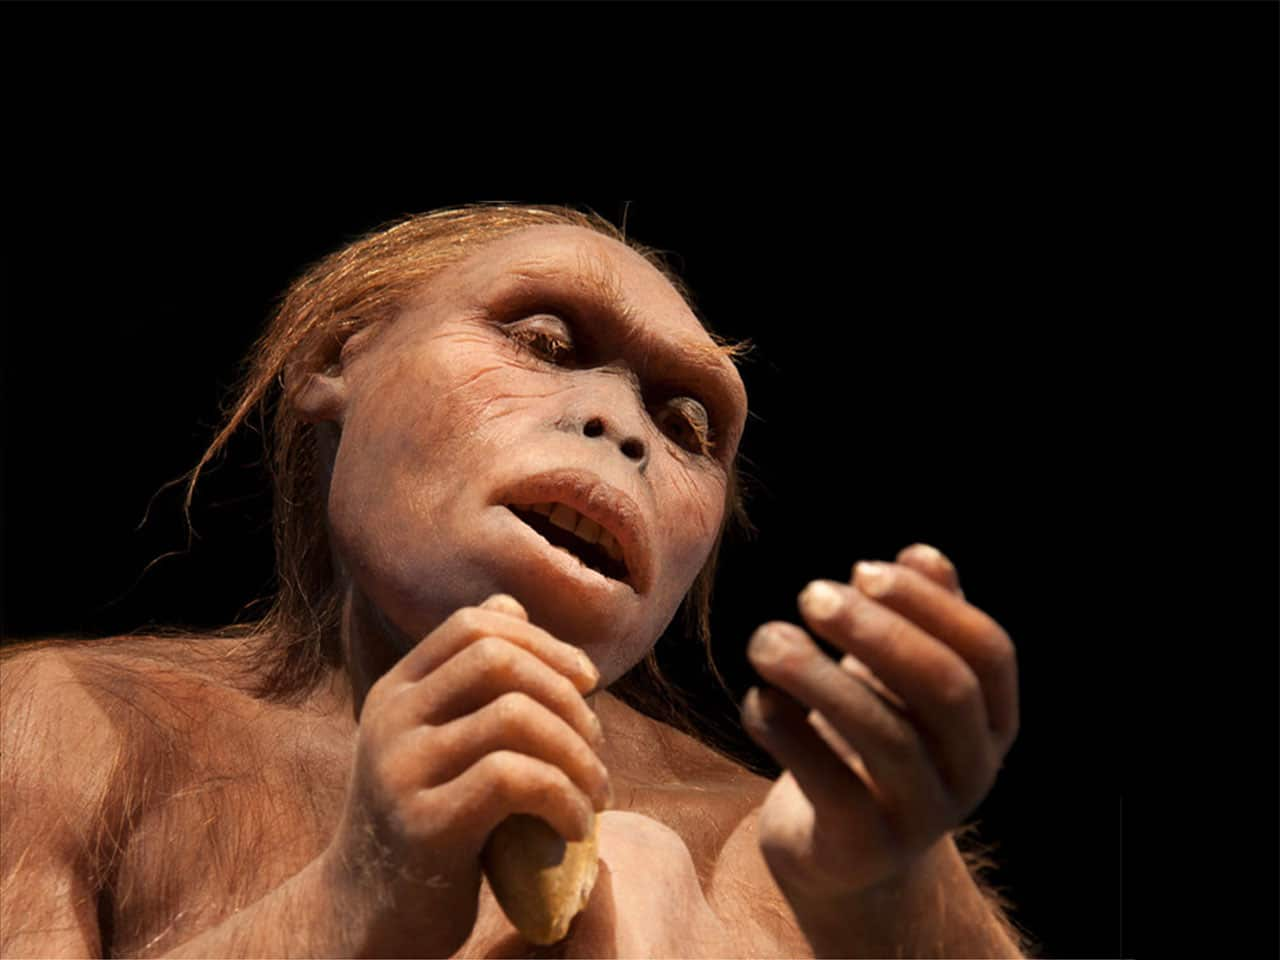 Our ancients were able to eat hard plant foods without damaging their teeth